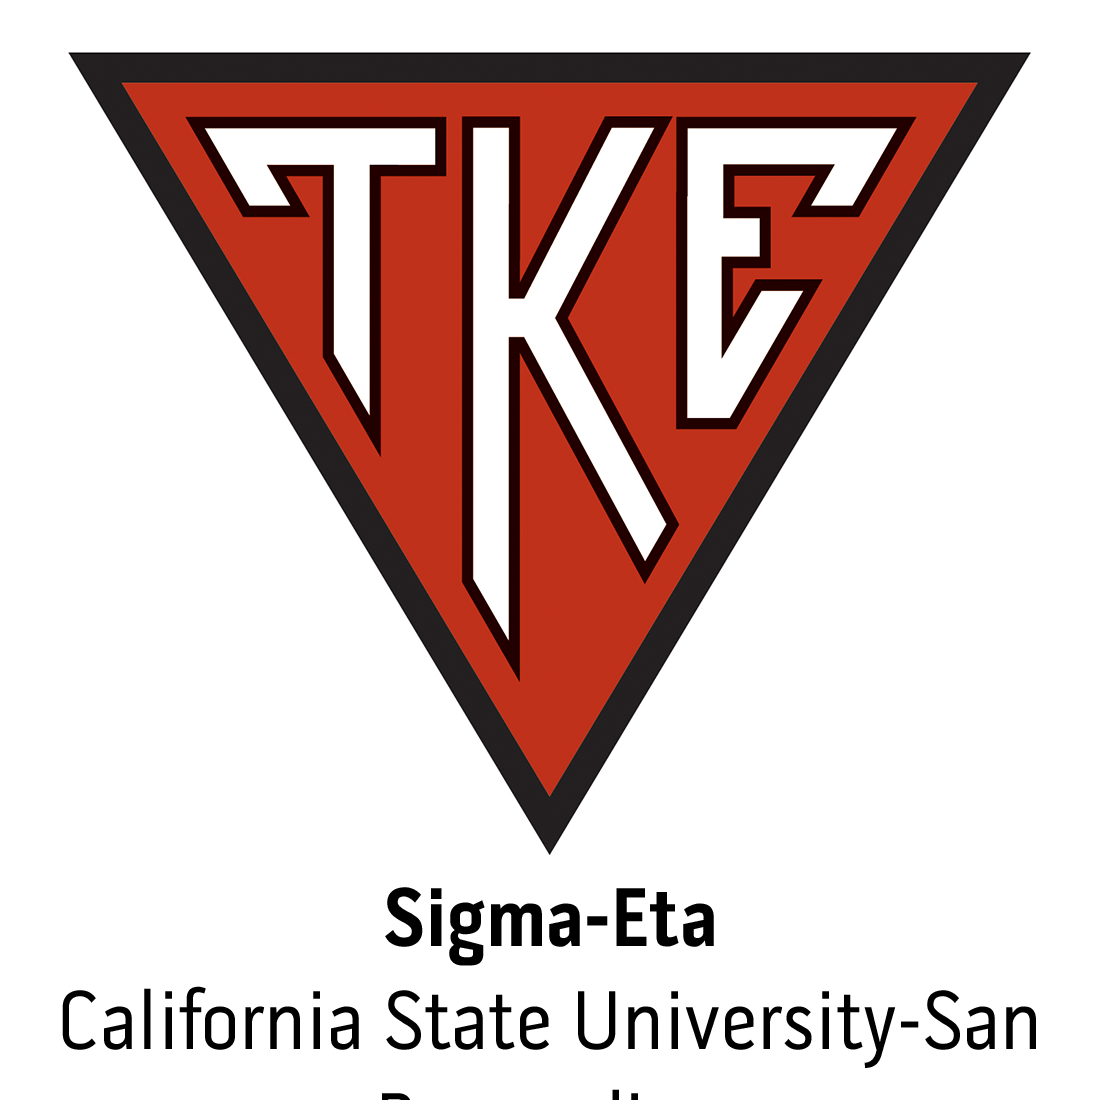 Sigma-Eta Chapter at California State University-San Bernardino